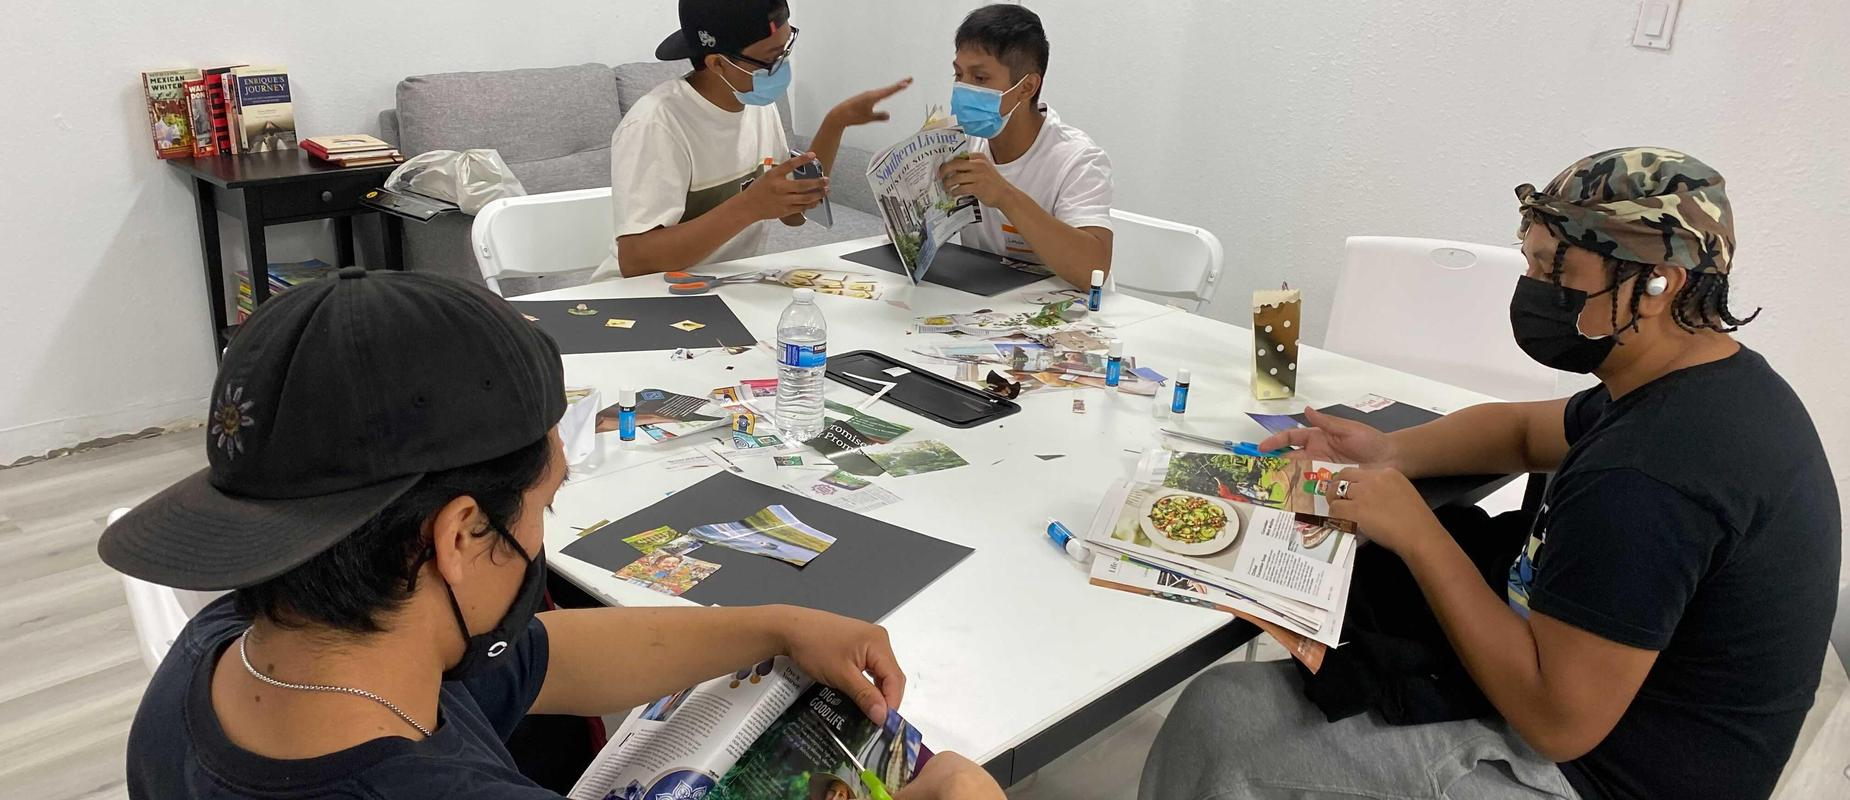 Canoga Park students work on vision boards